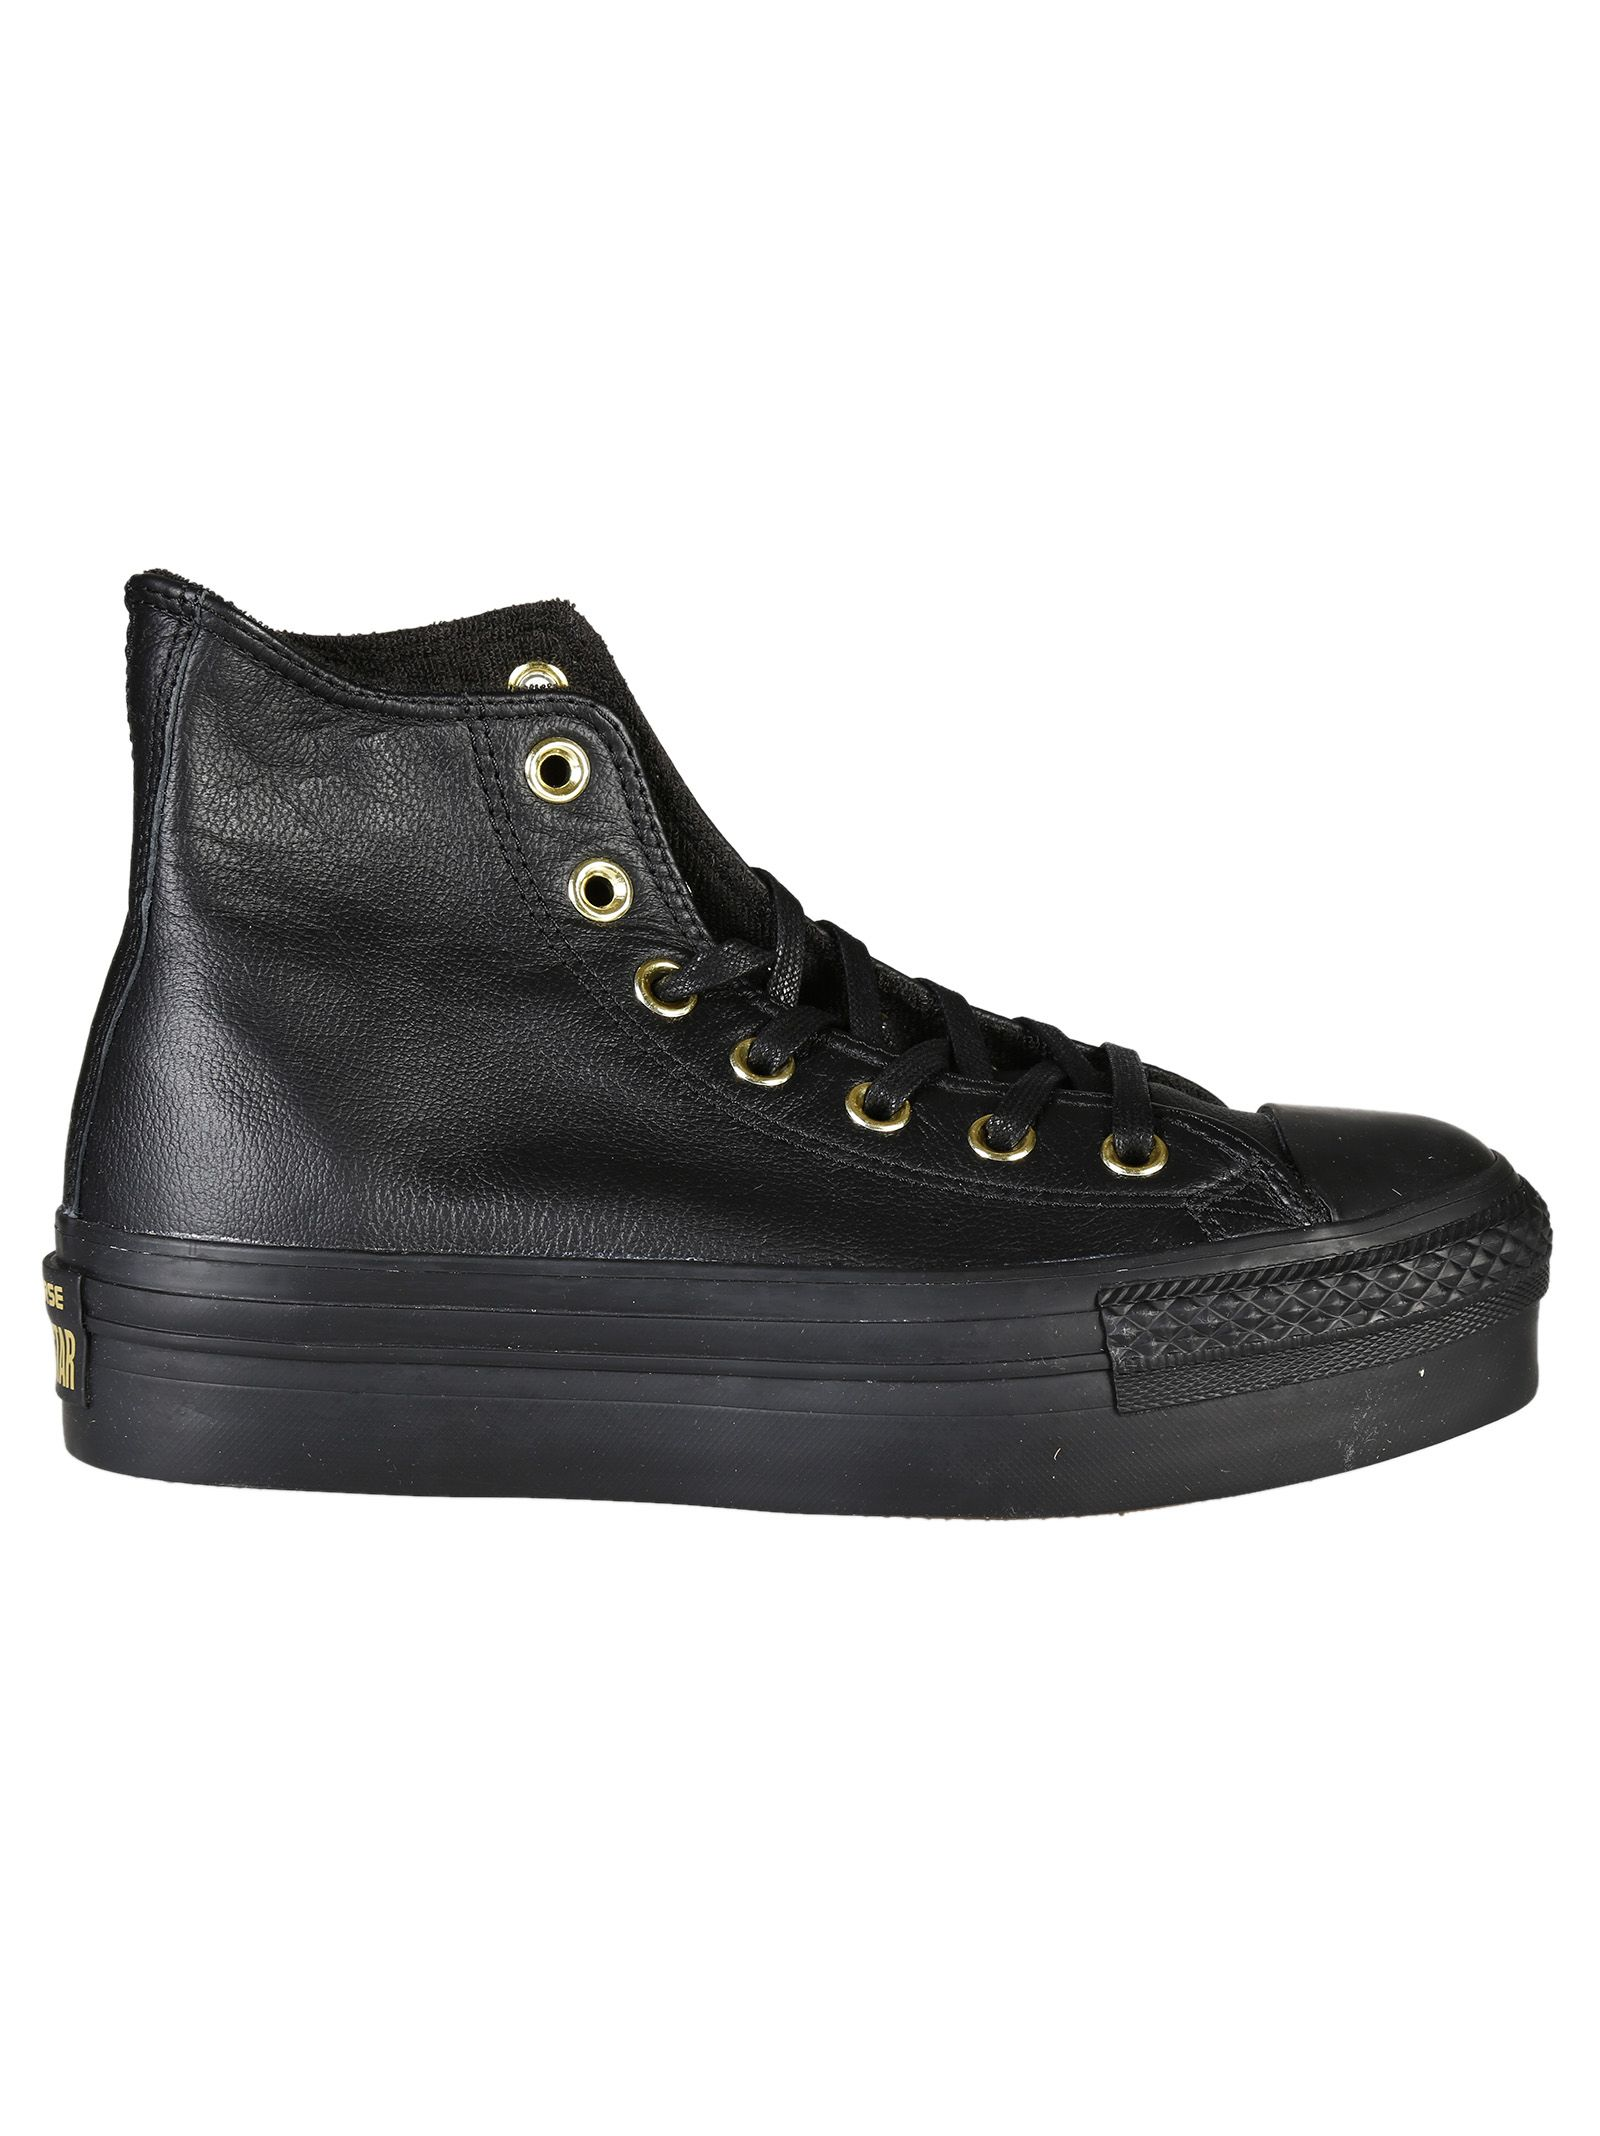 converse hi platform leather